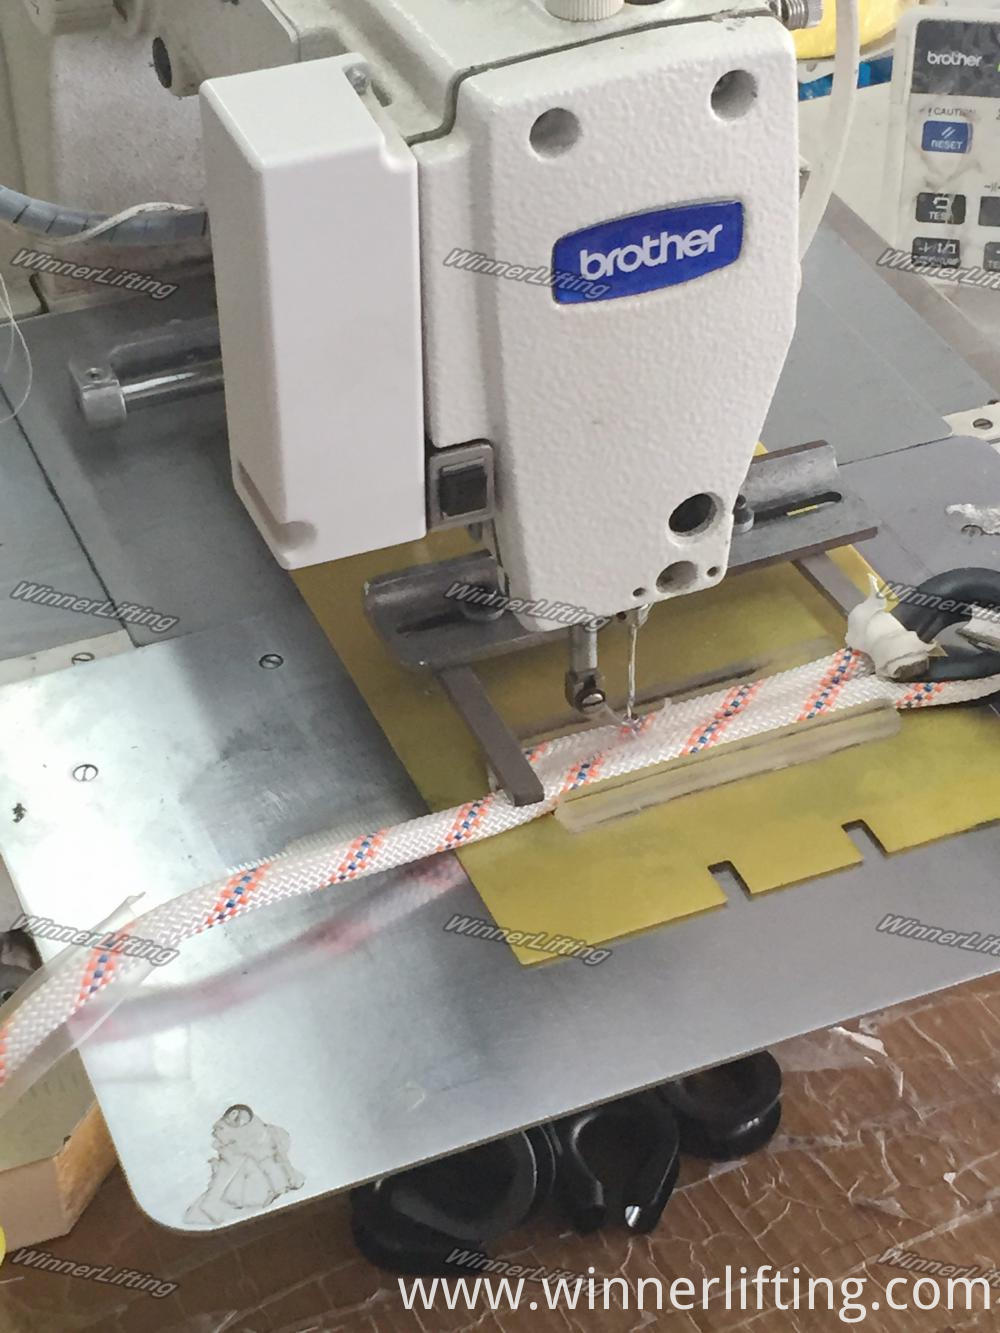 Brother stitching machine